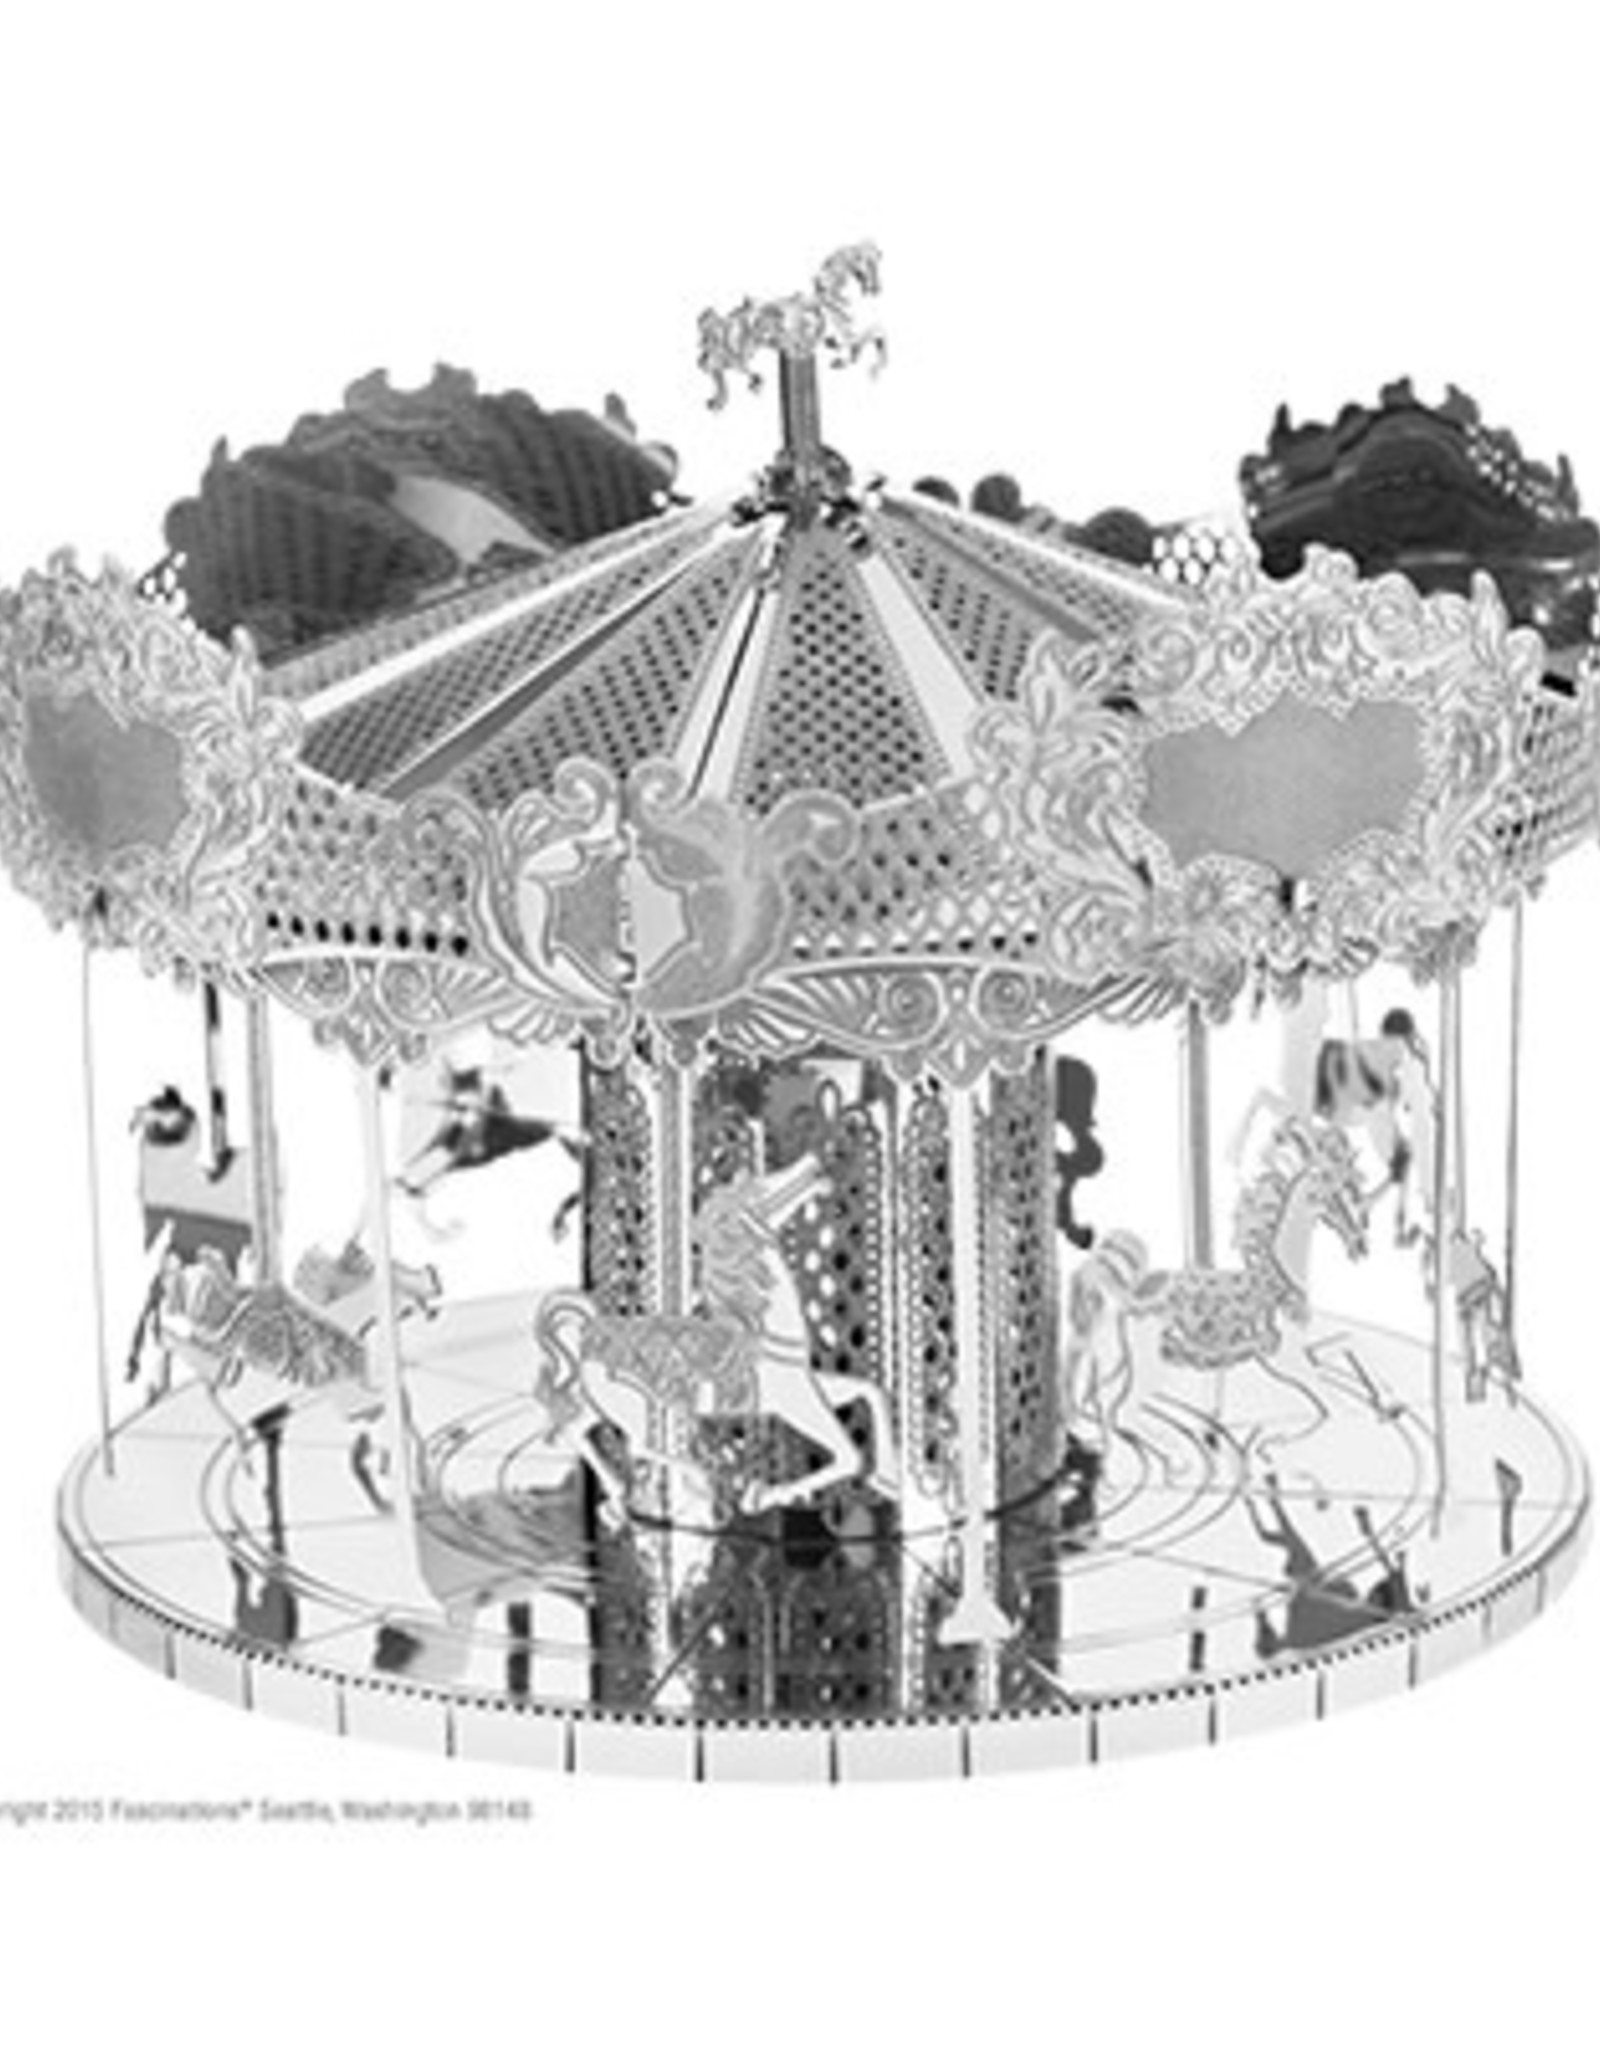 MetalEarth M.E., Merry Go Round, 2 sheets